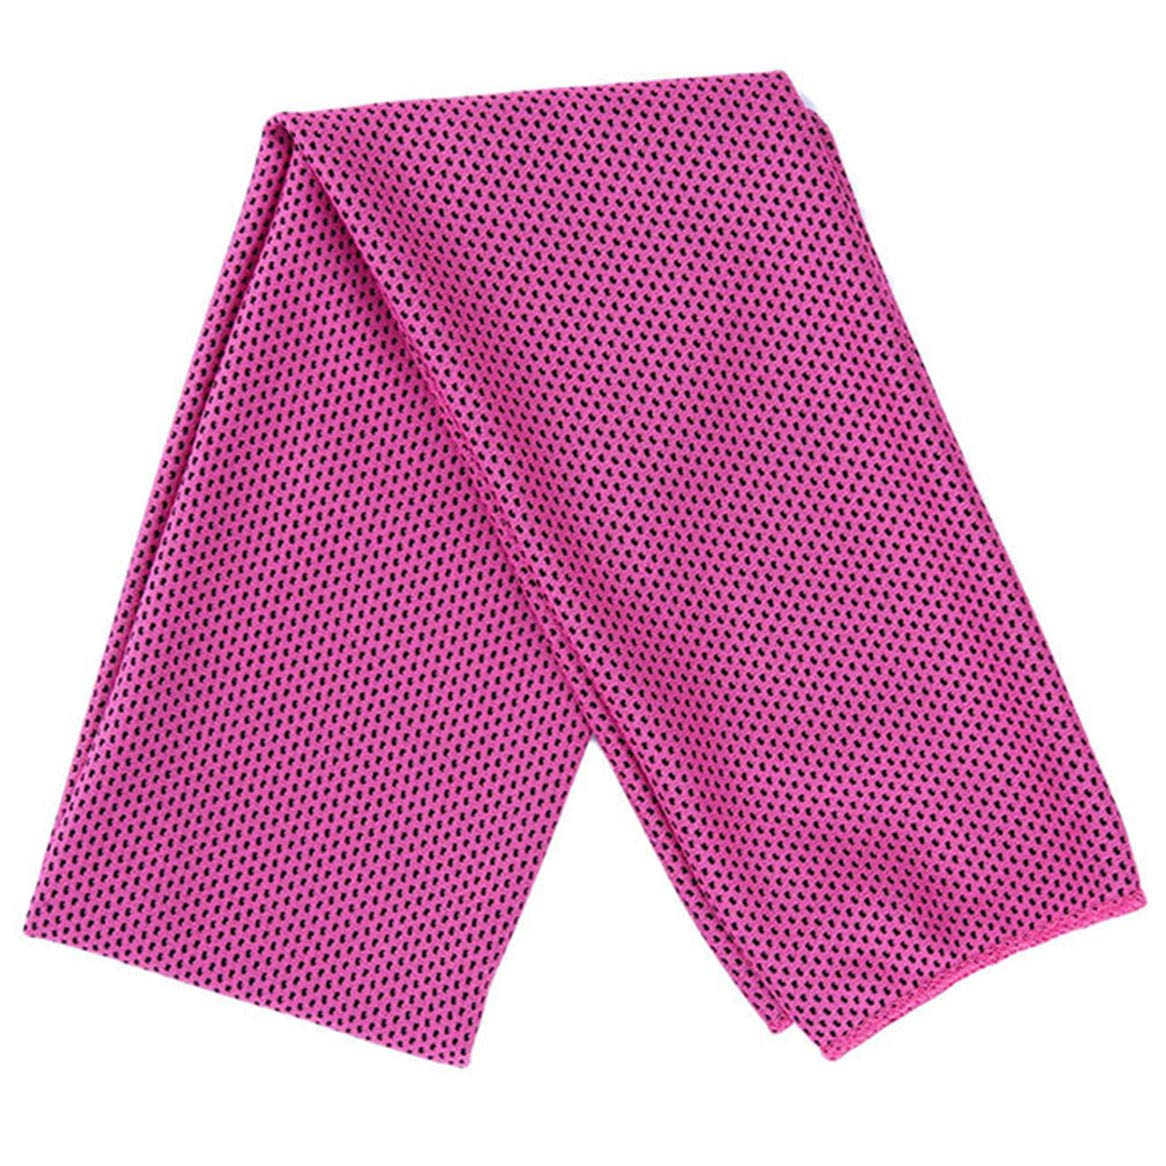 Botreelife Cooling Towel Instant Relief Ice Cold Soft Breathable Chilly Towel for Yoga Beach Gym Swimming Camping